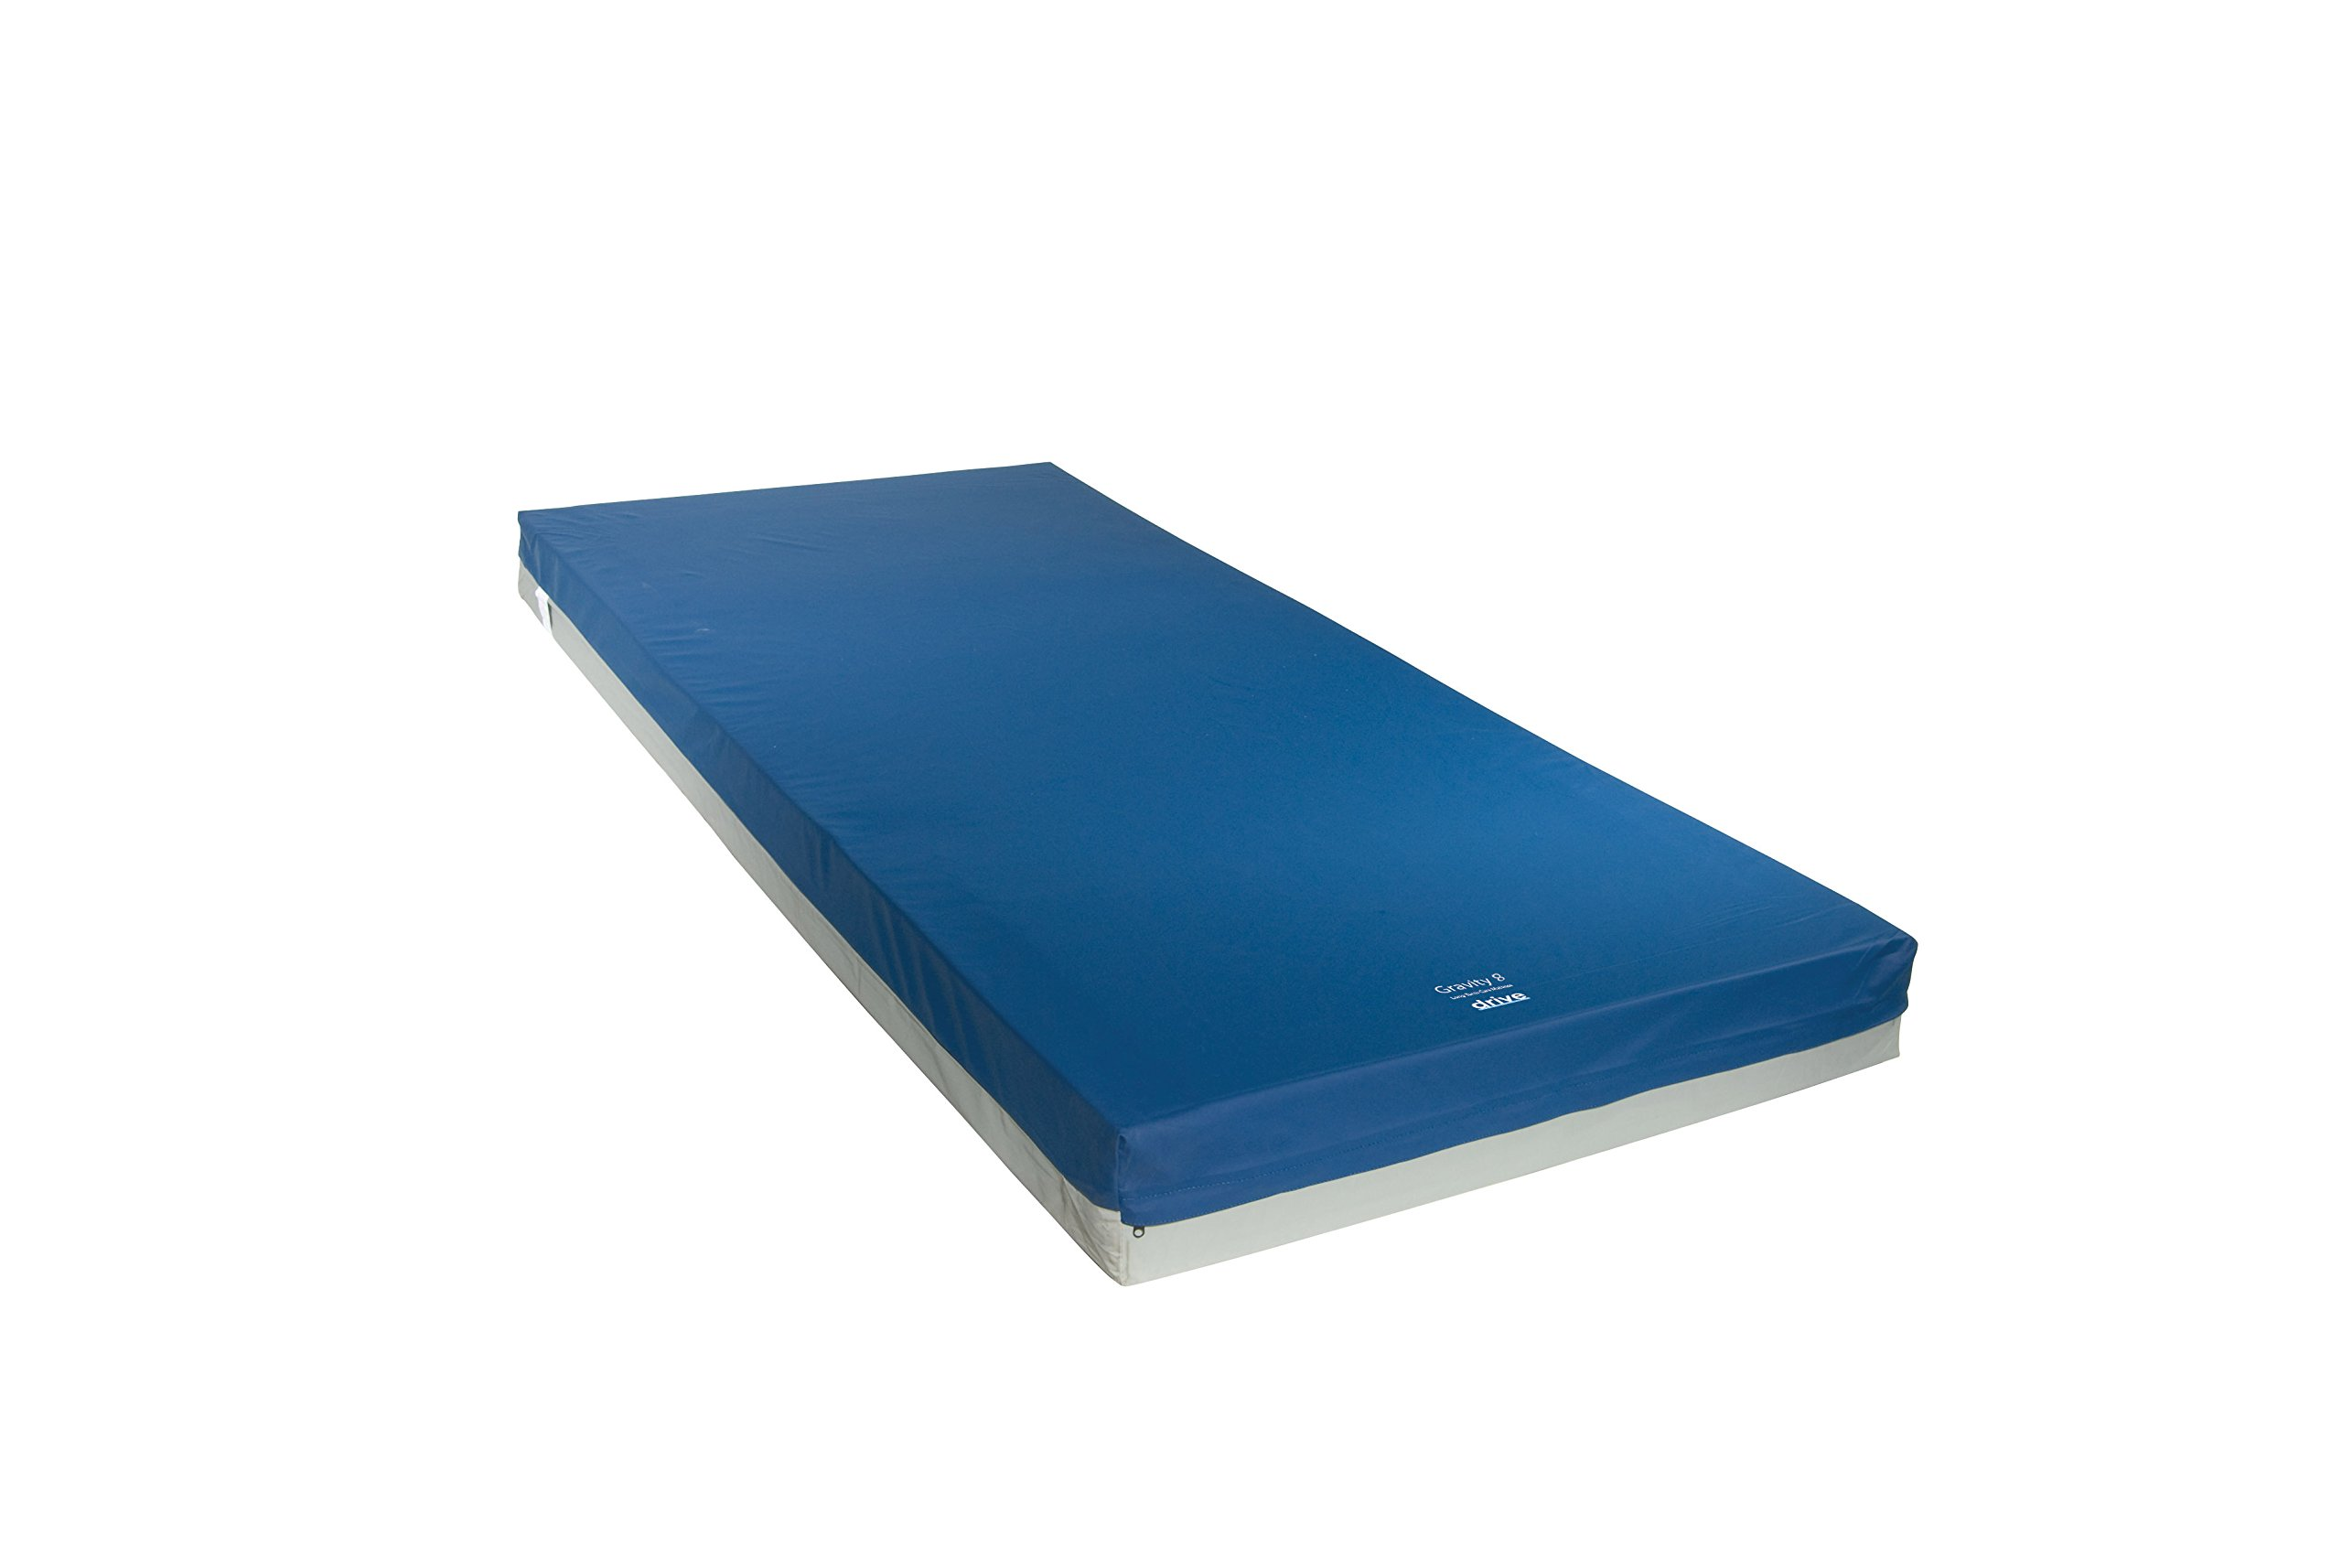 Drive Medical 15777 Gravity 7 Long Term Care Pressure Redistribution Mattress, Blue by Drive Medical (Image #1)